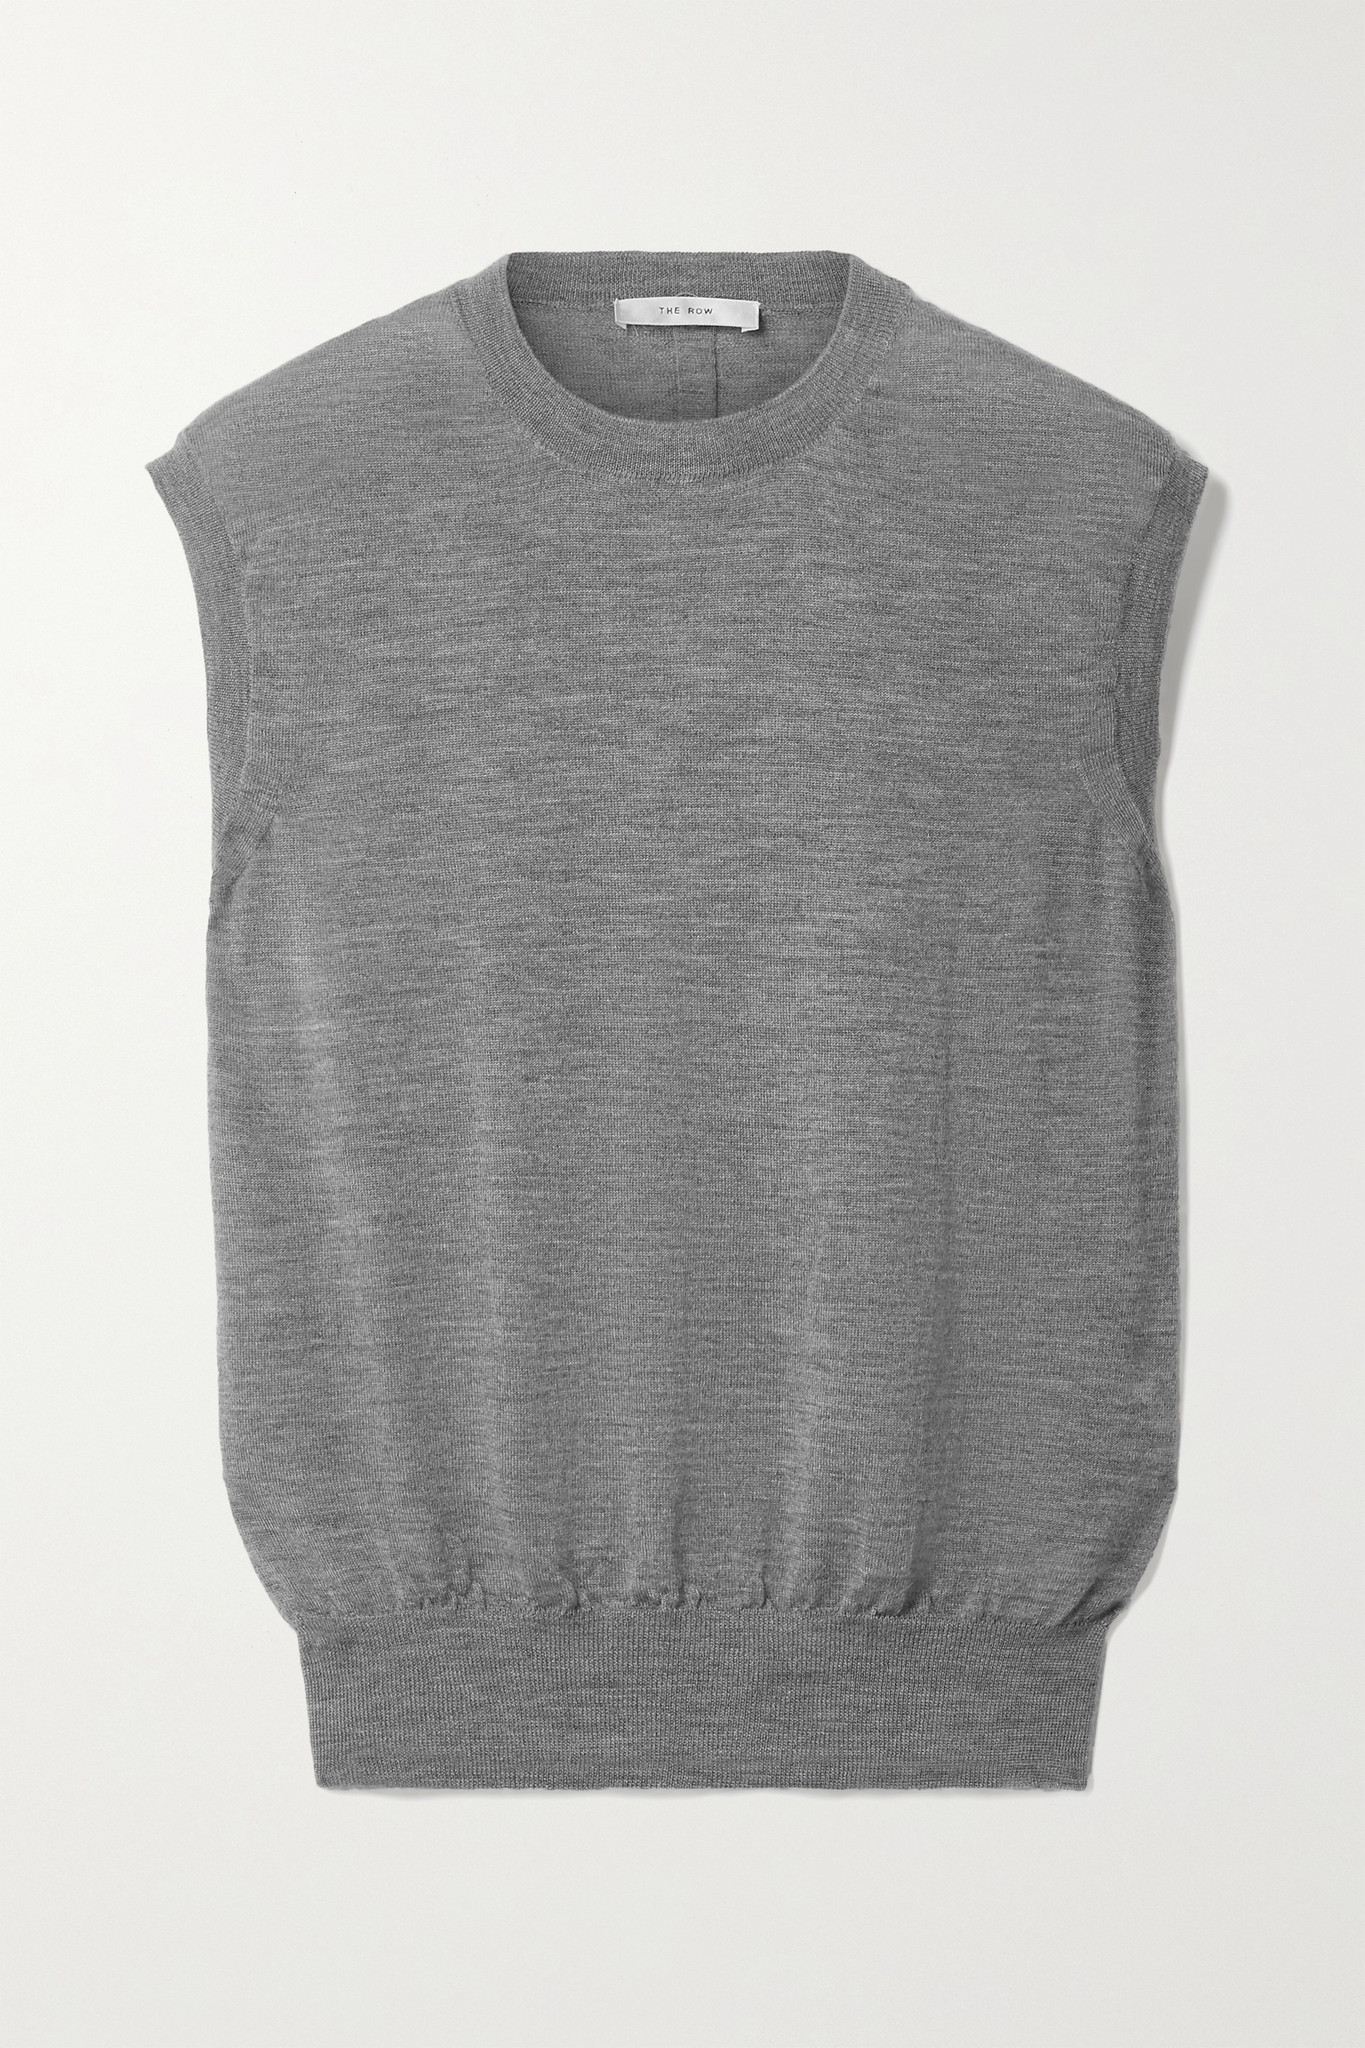 THE ROW - Balham Cashmere Top - Gray - large